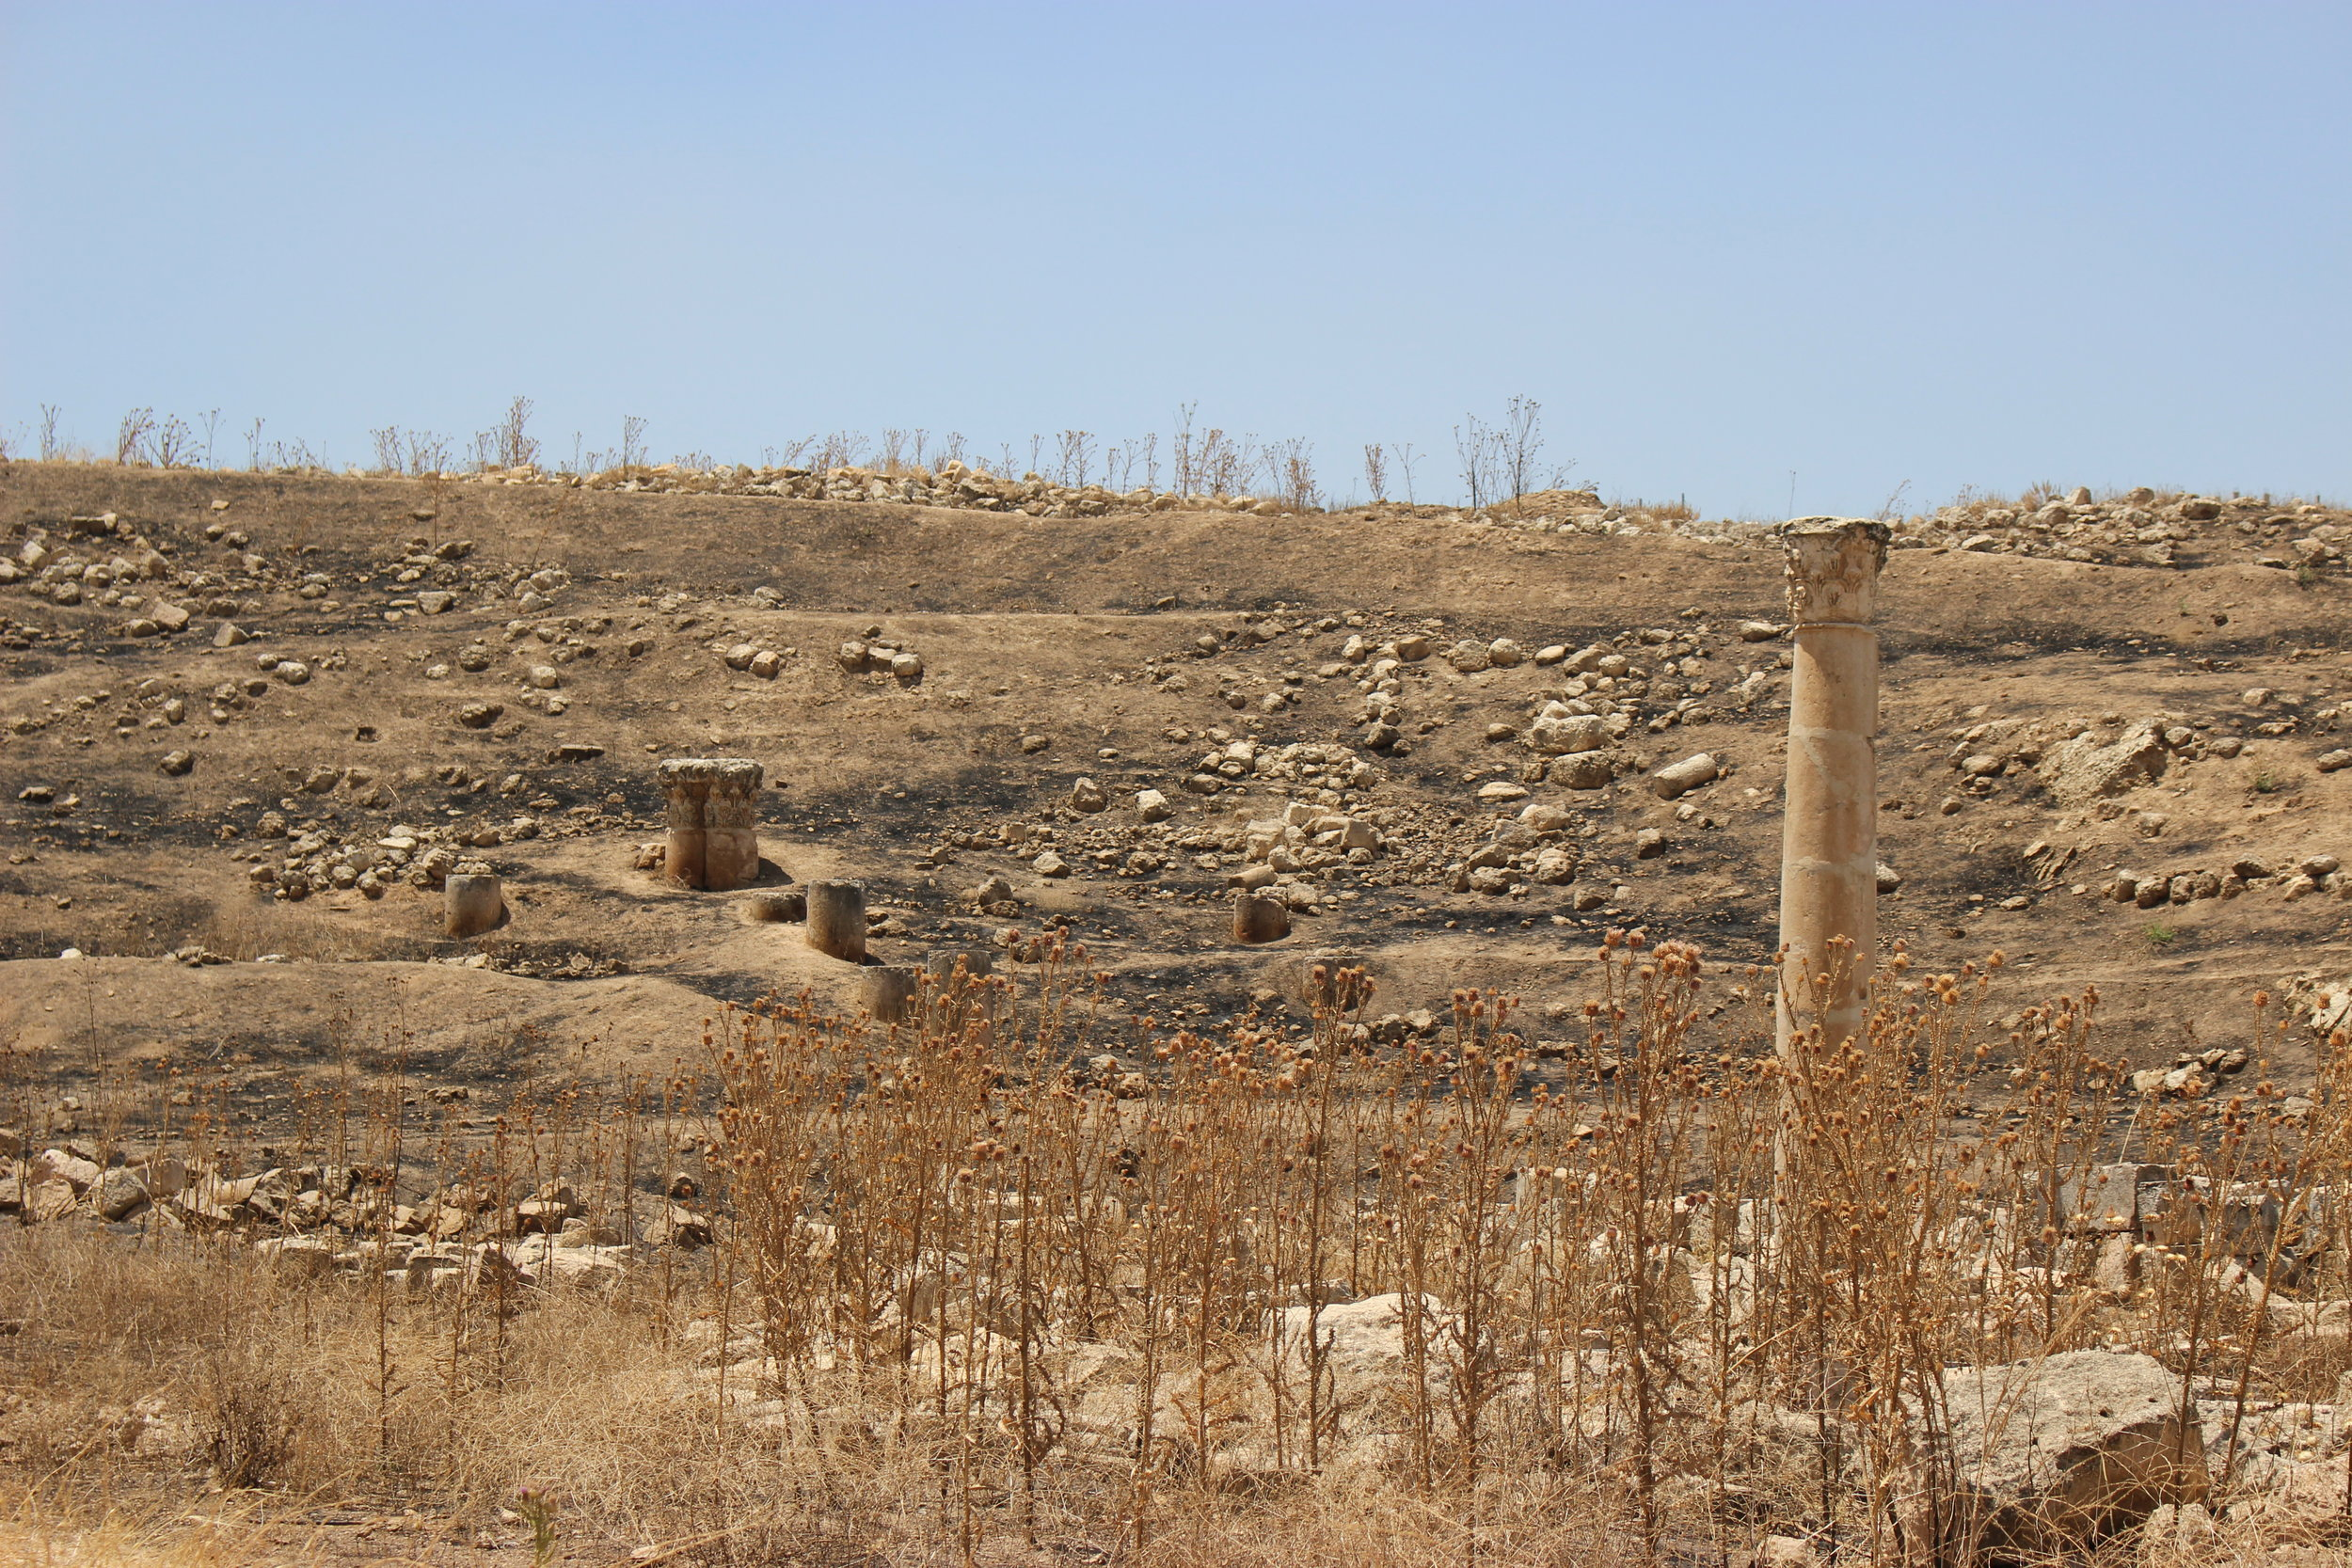 The hills above Jerash are scorched black by previous blazes. Ruins stand starkly amid the soot. Photo credit: Jessen, 2019